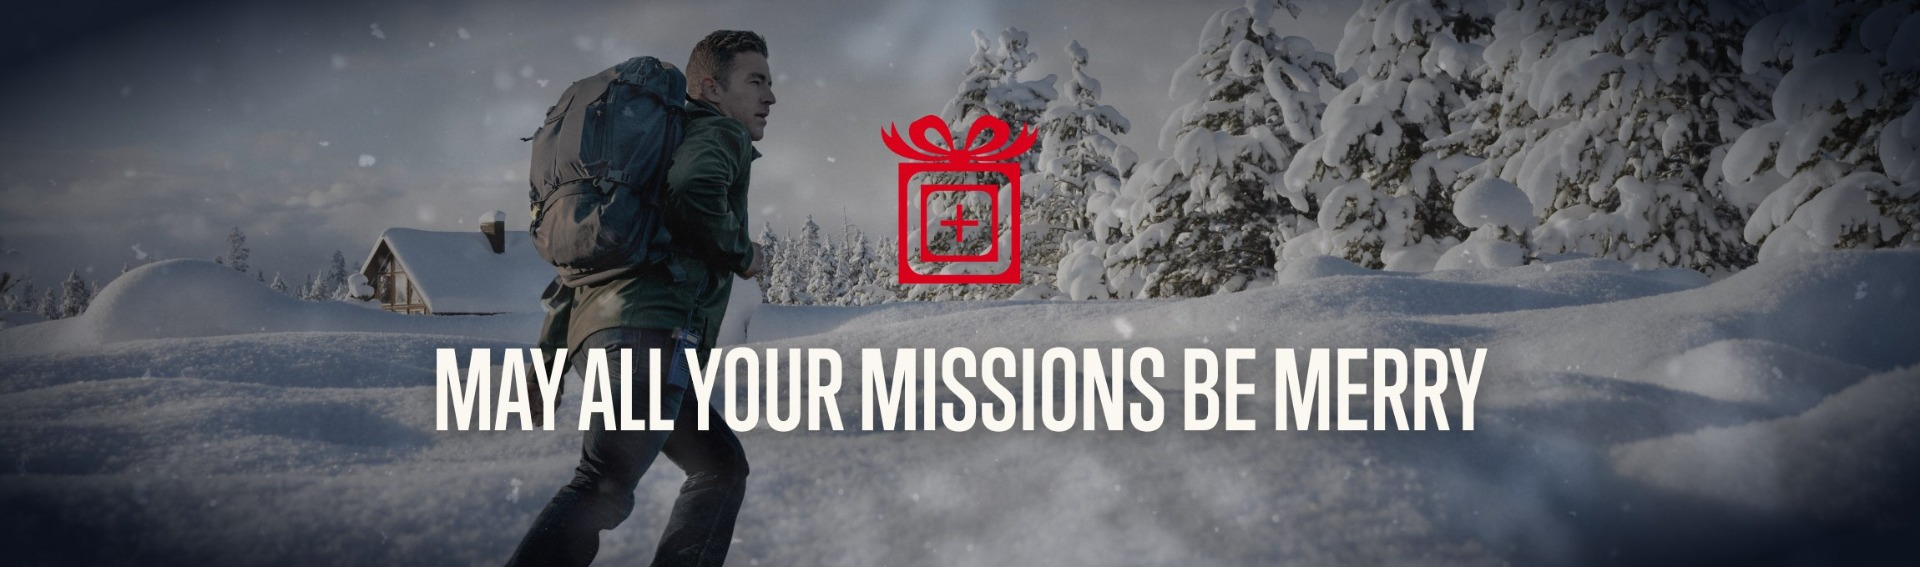 May All Your Missions Be Merry